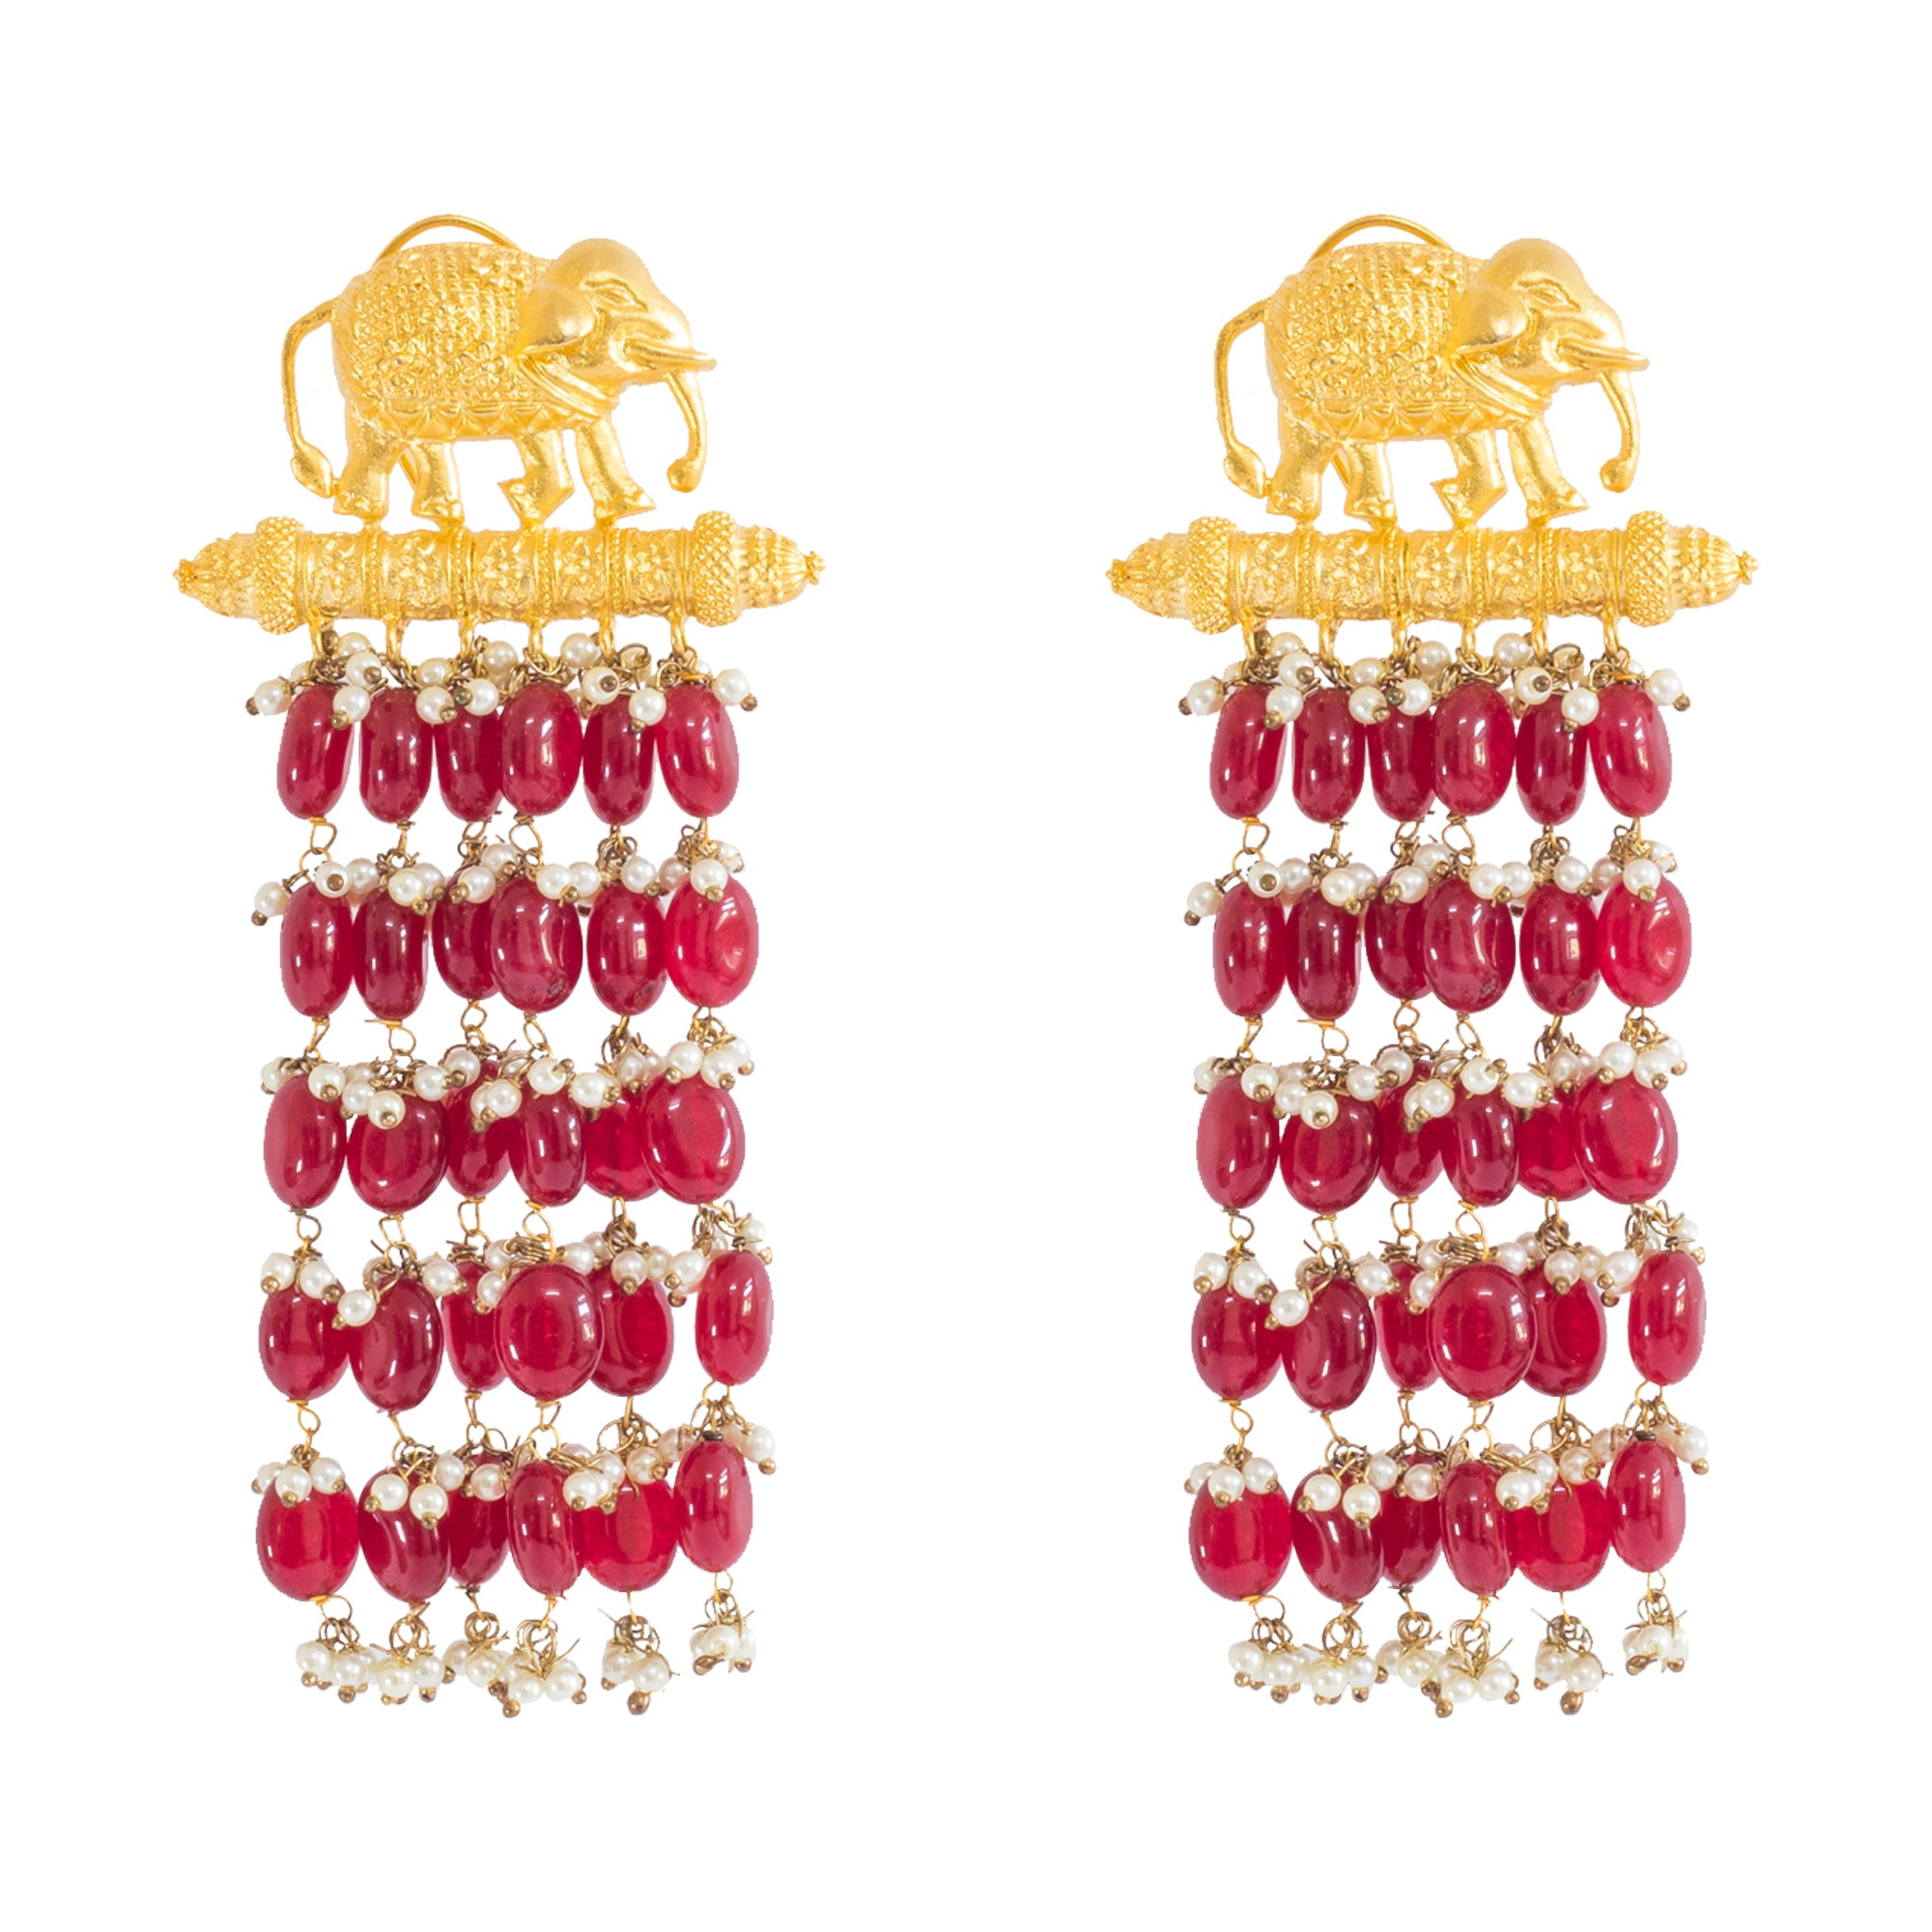 GAJJ JHOOMAR EARRINGS